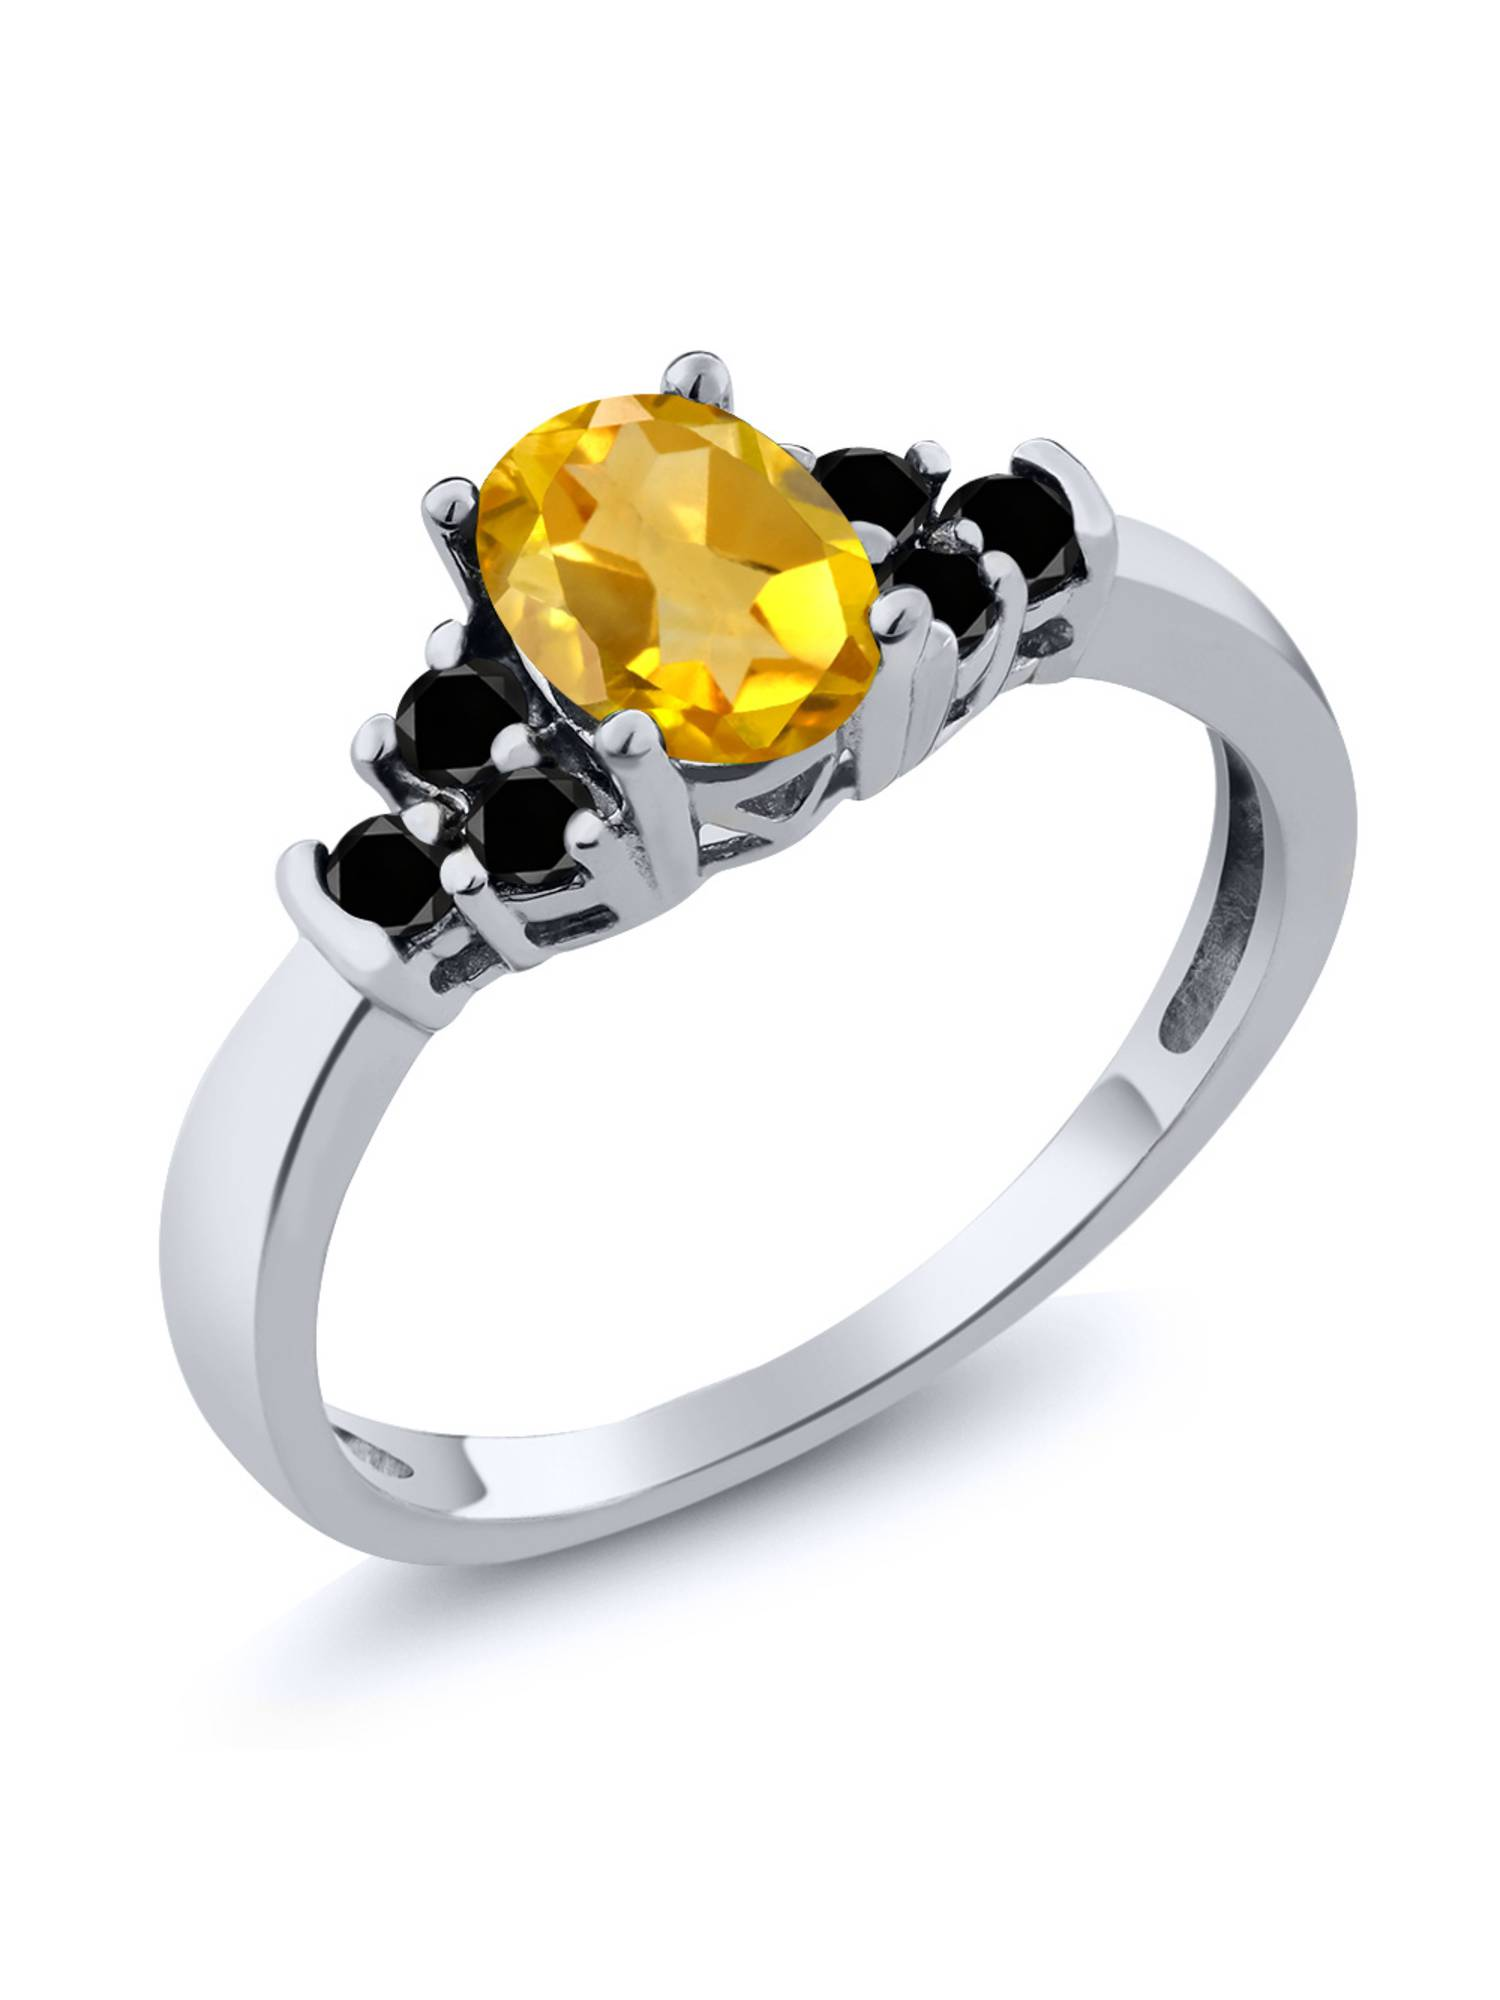 Solitaire Engagement Ring Yellow Engagment Ring Unique Engagement Ring Classic Oval Yellow Citrine Sterling Silver Engagement Ring